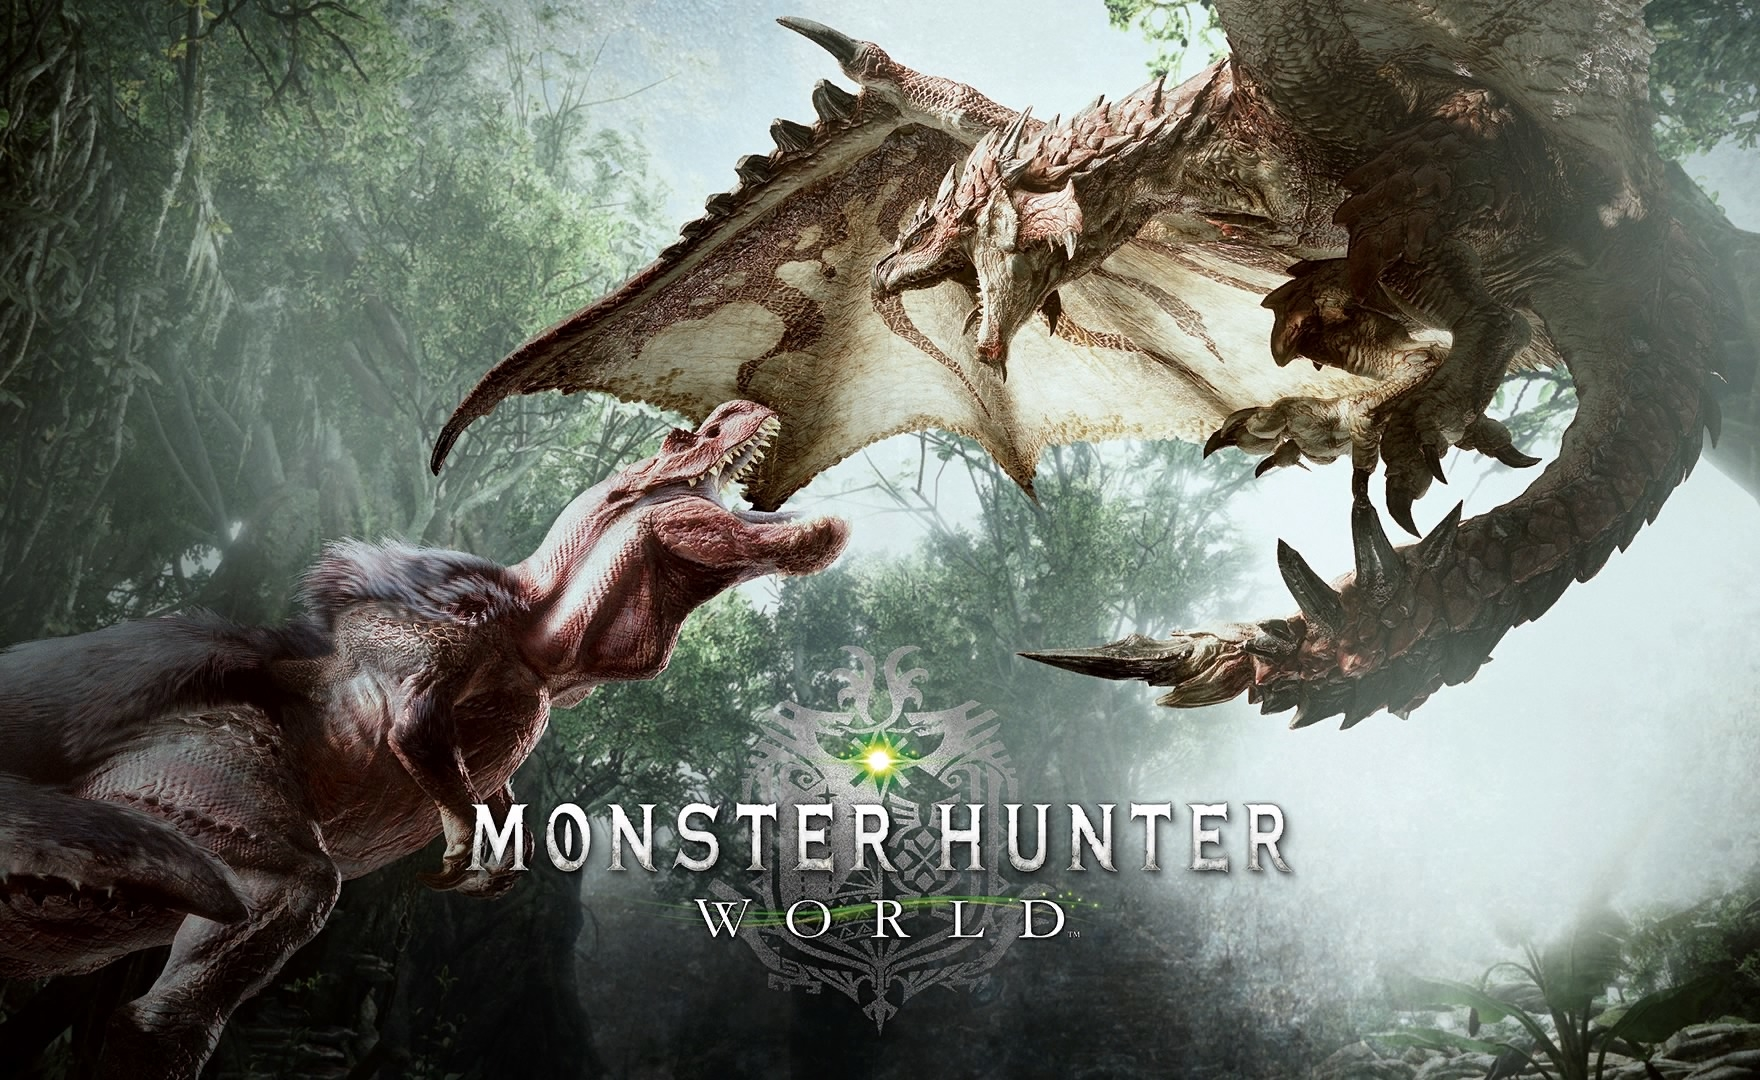 Monster Hunter su PS5 e Xbox Scarlett: il director parla del futuro della serie